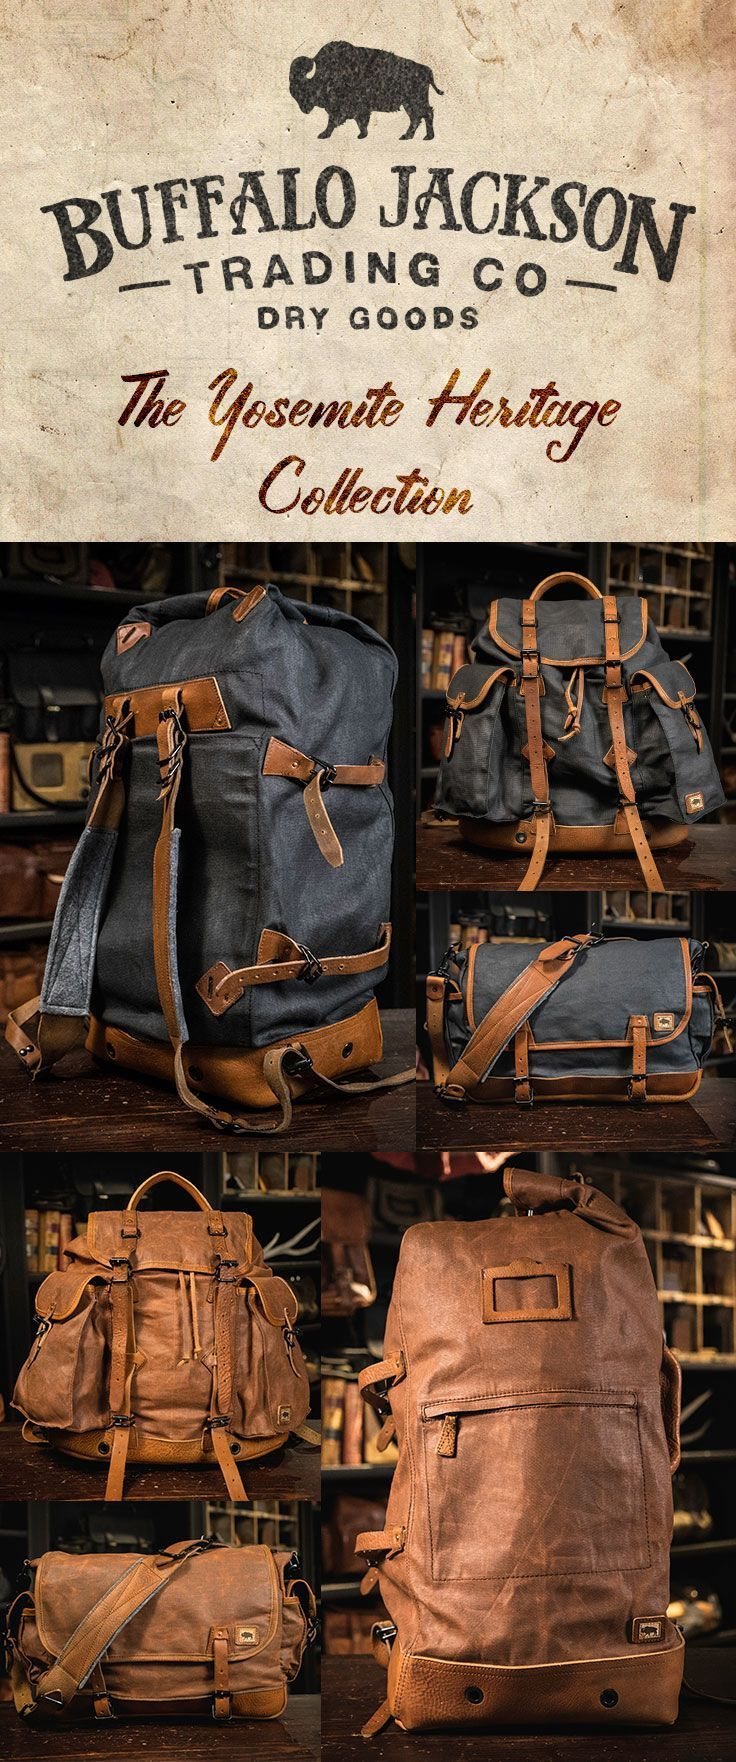 88 Best Bags Backpacks Images On Pinterest Bag Men And Tas Tumi Alpha 2 Hanging Travel Kit Crafted Of Waxed Canvas Full Grain Leather With A